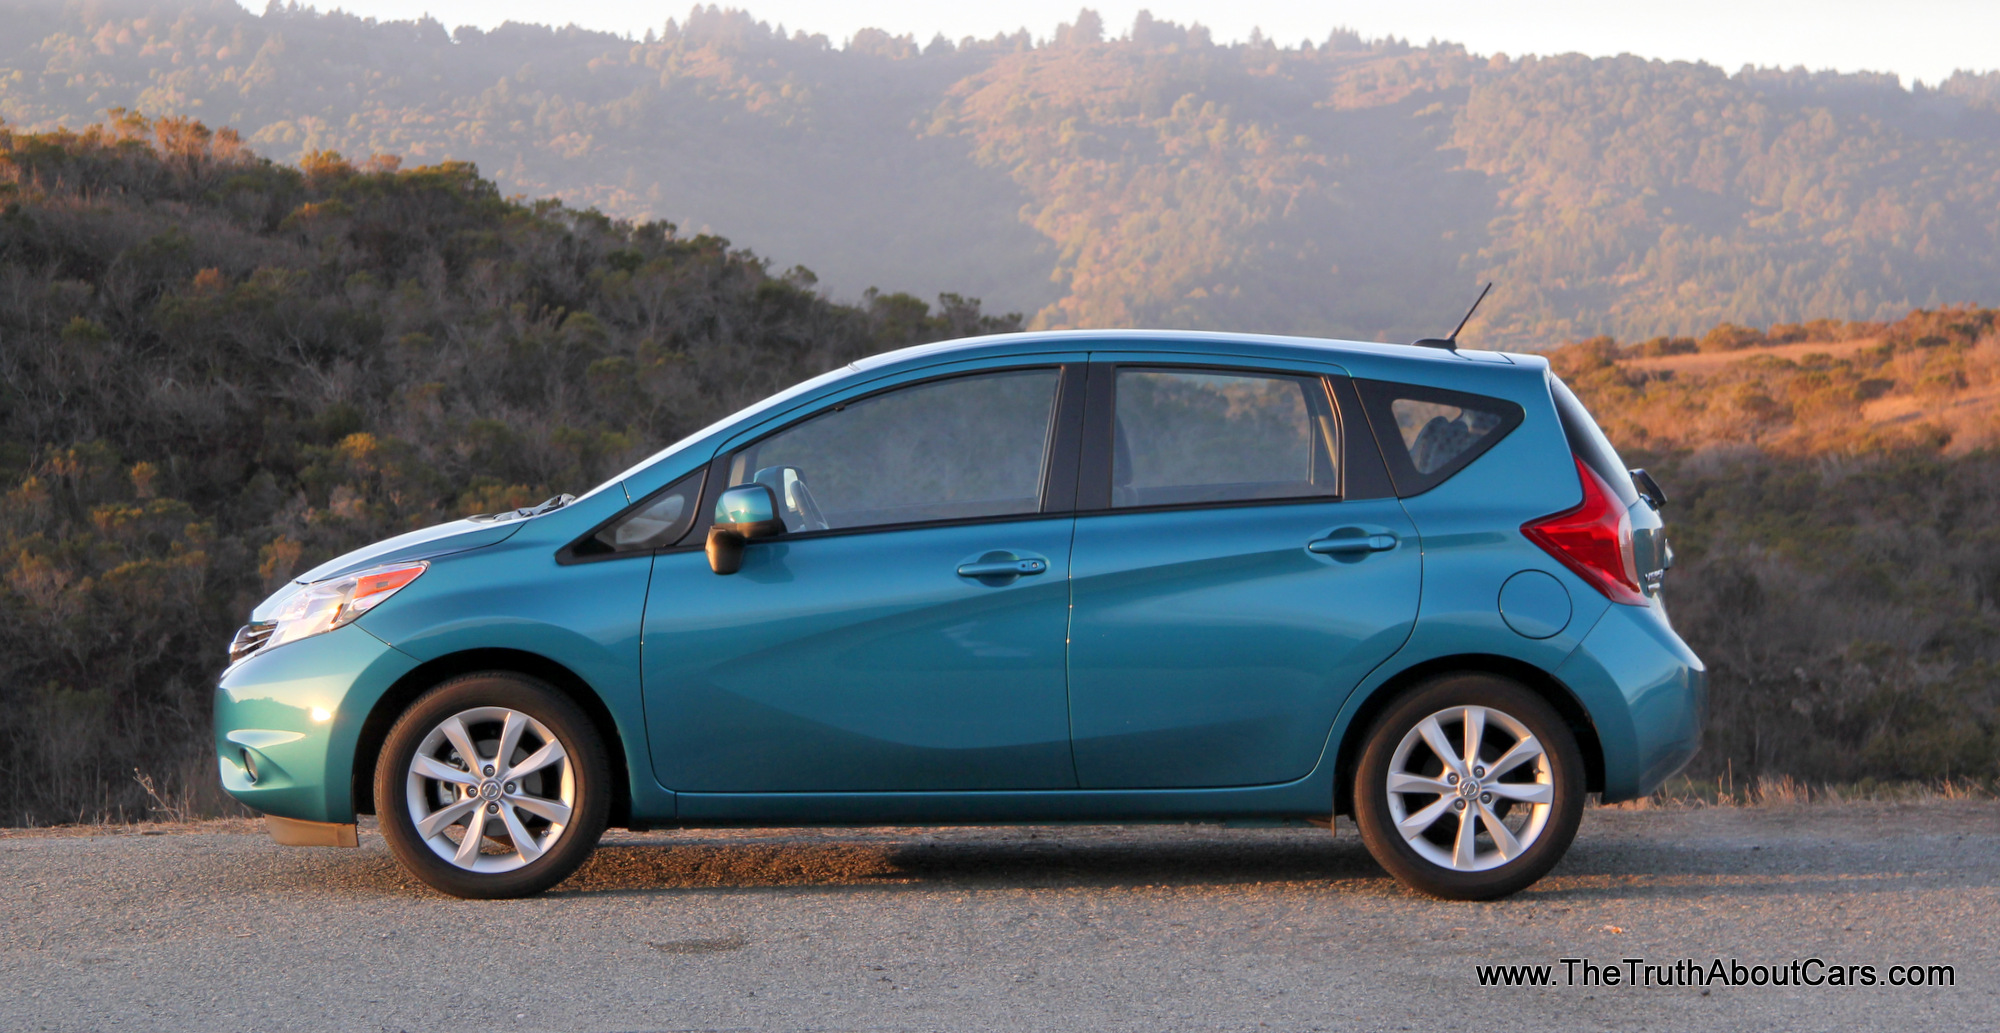 Review: 2014 Nissan Versa Note (With Video) - The Truth About Cars